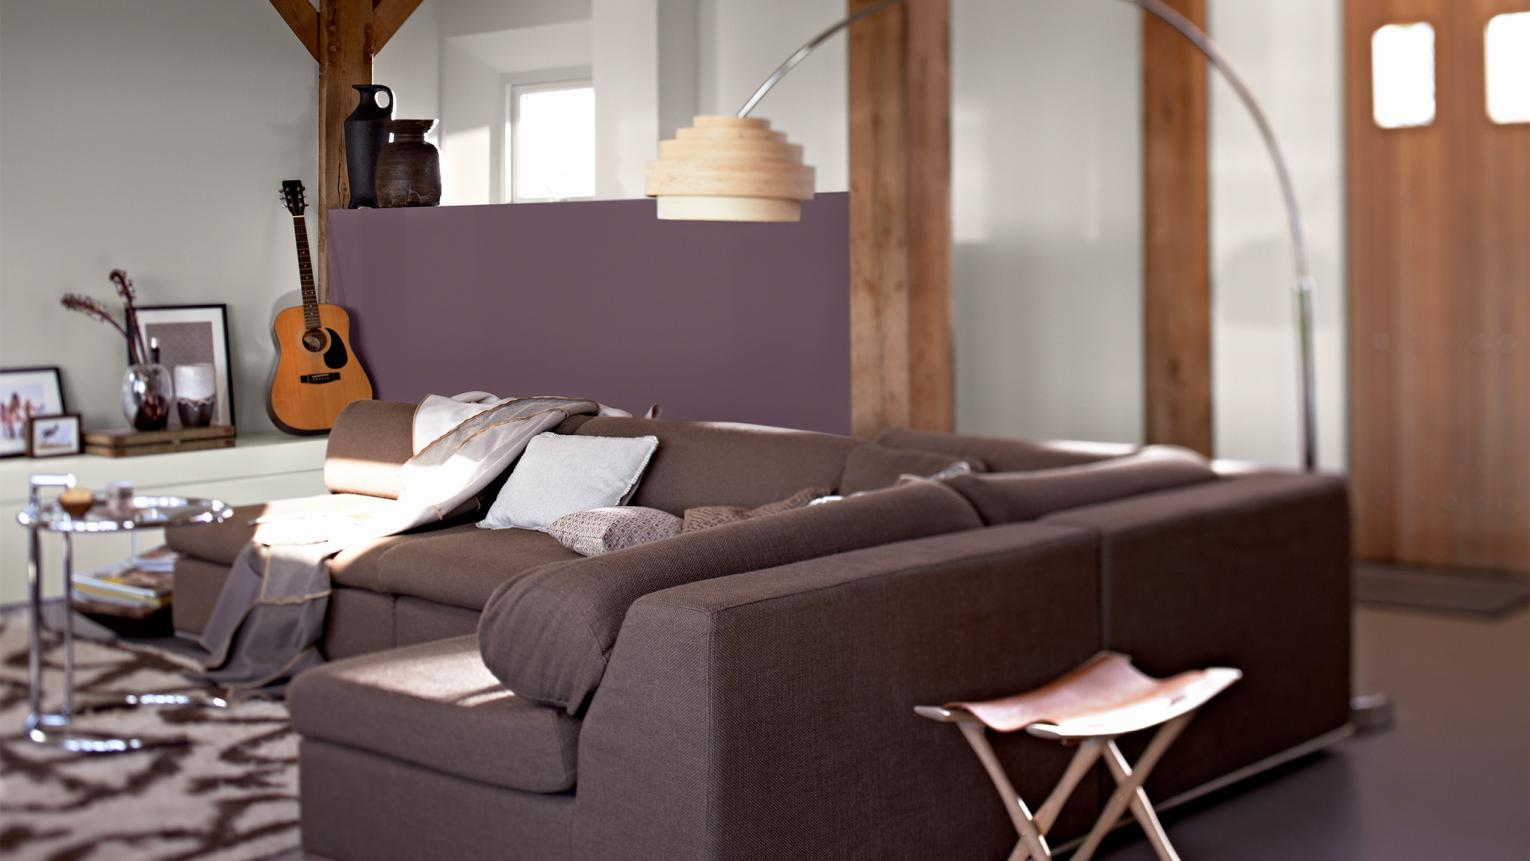 Decorating an open plan living room? Use a colour that  defines different areas in an open-plan room.